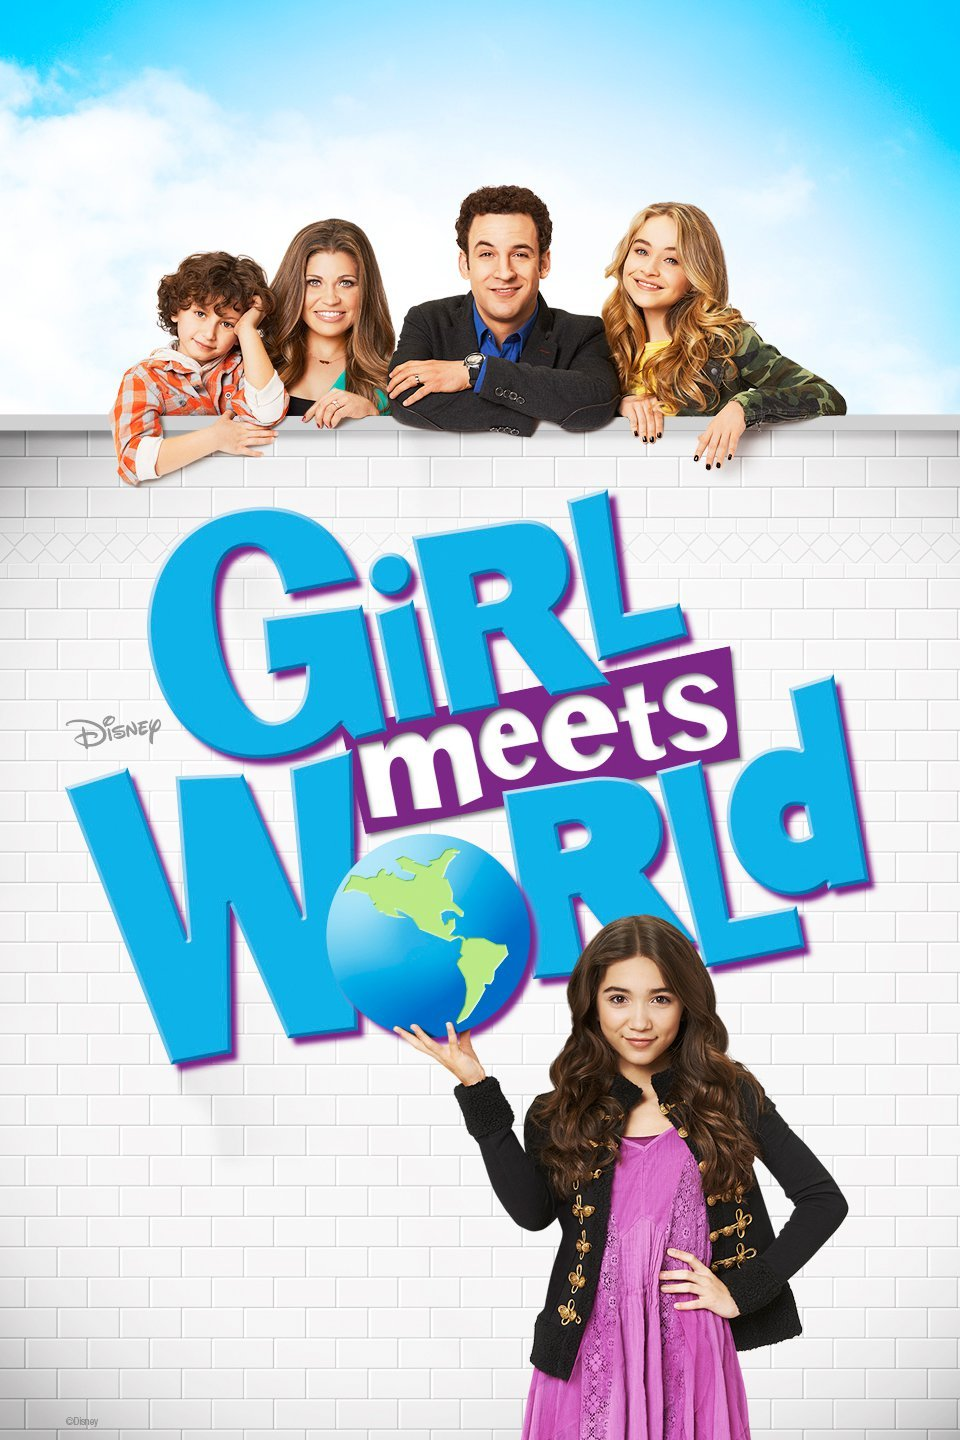 Watchdisneychannel go com girl meets world